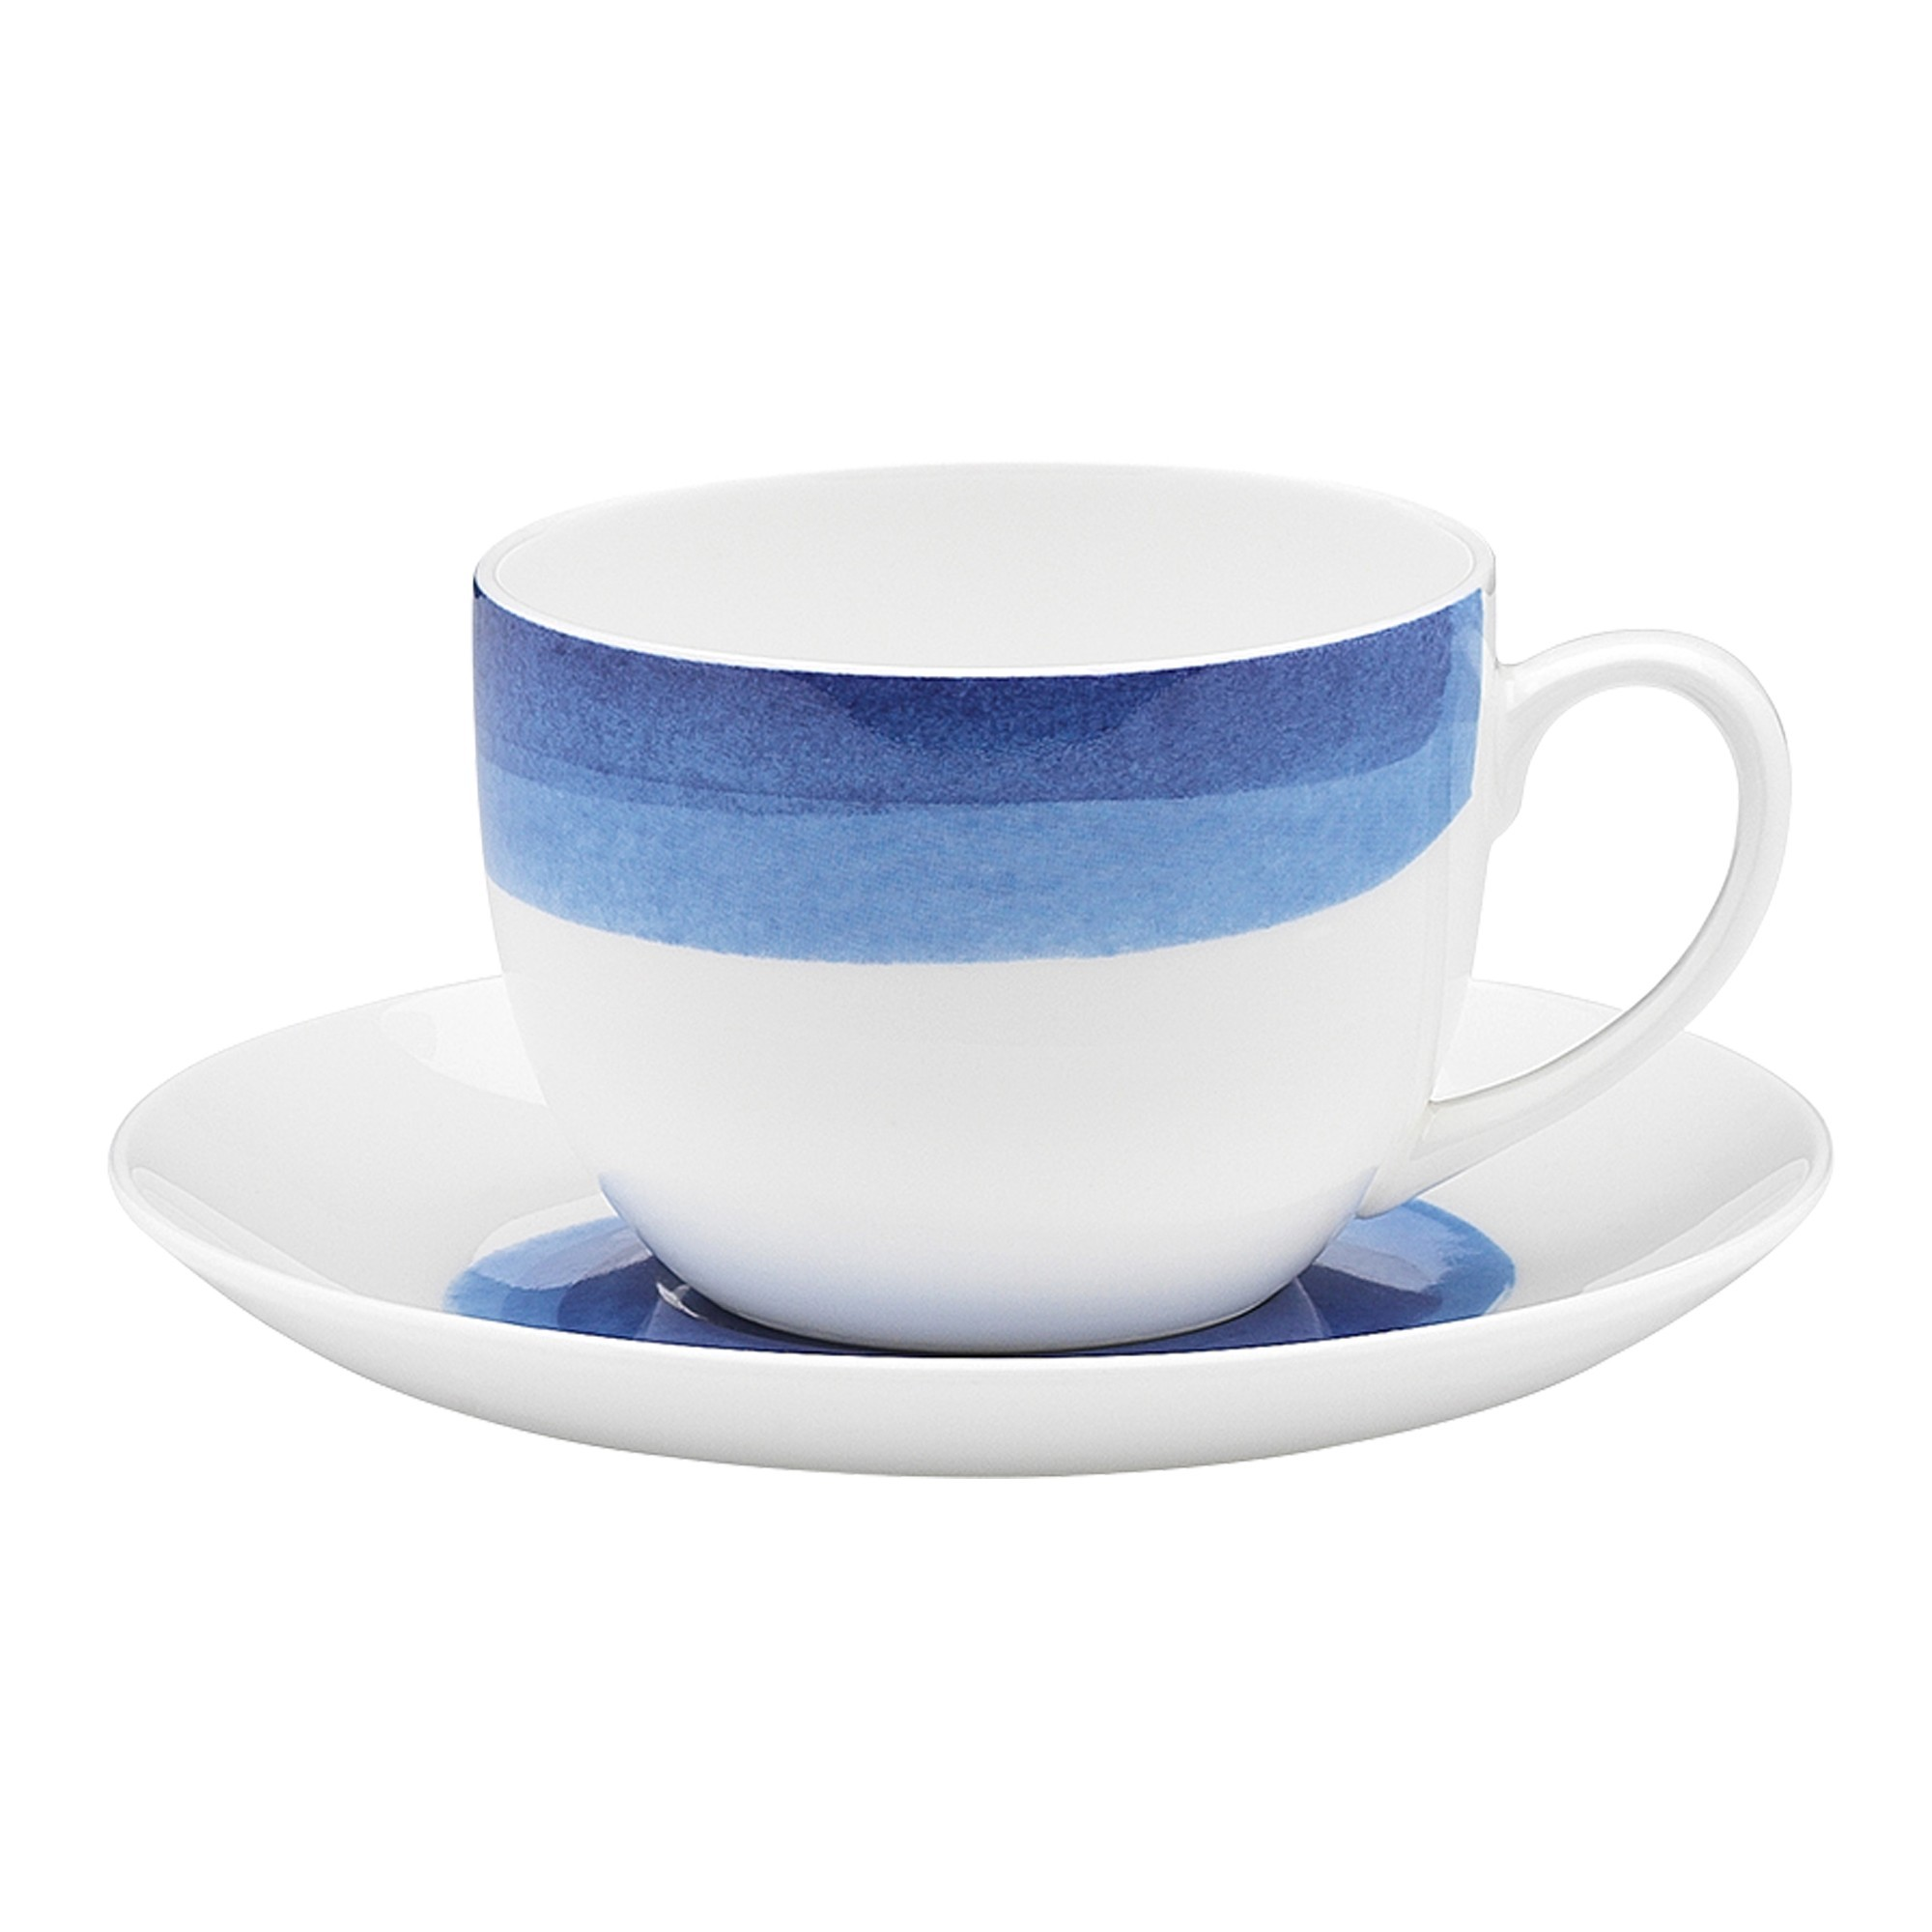 Ecology Watercolour Bone China Teacup & Saucer Set, Set of 6, Ocean